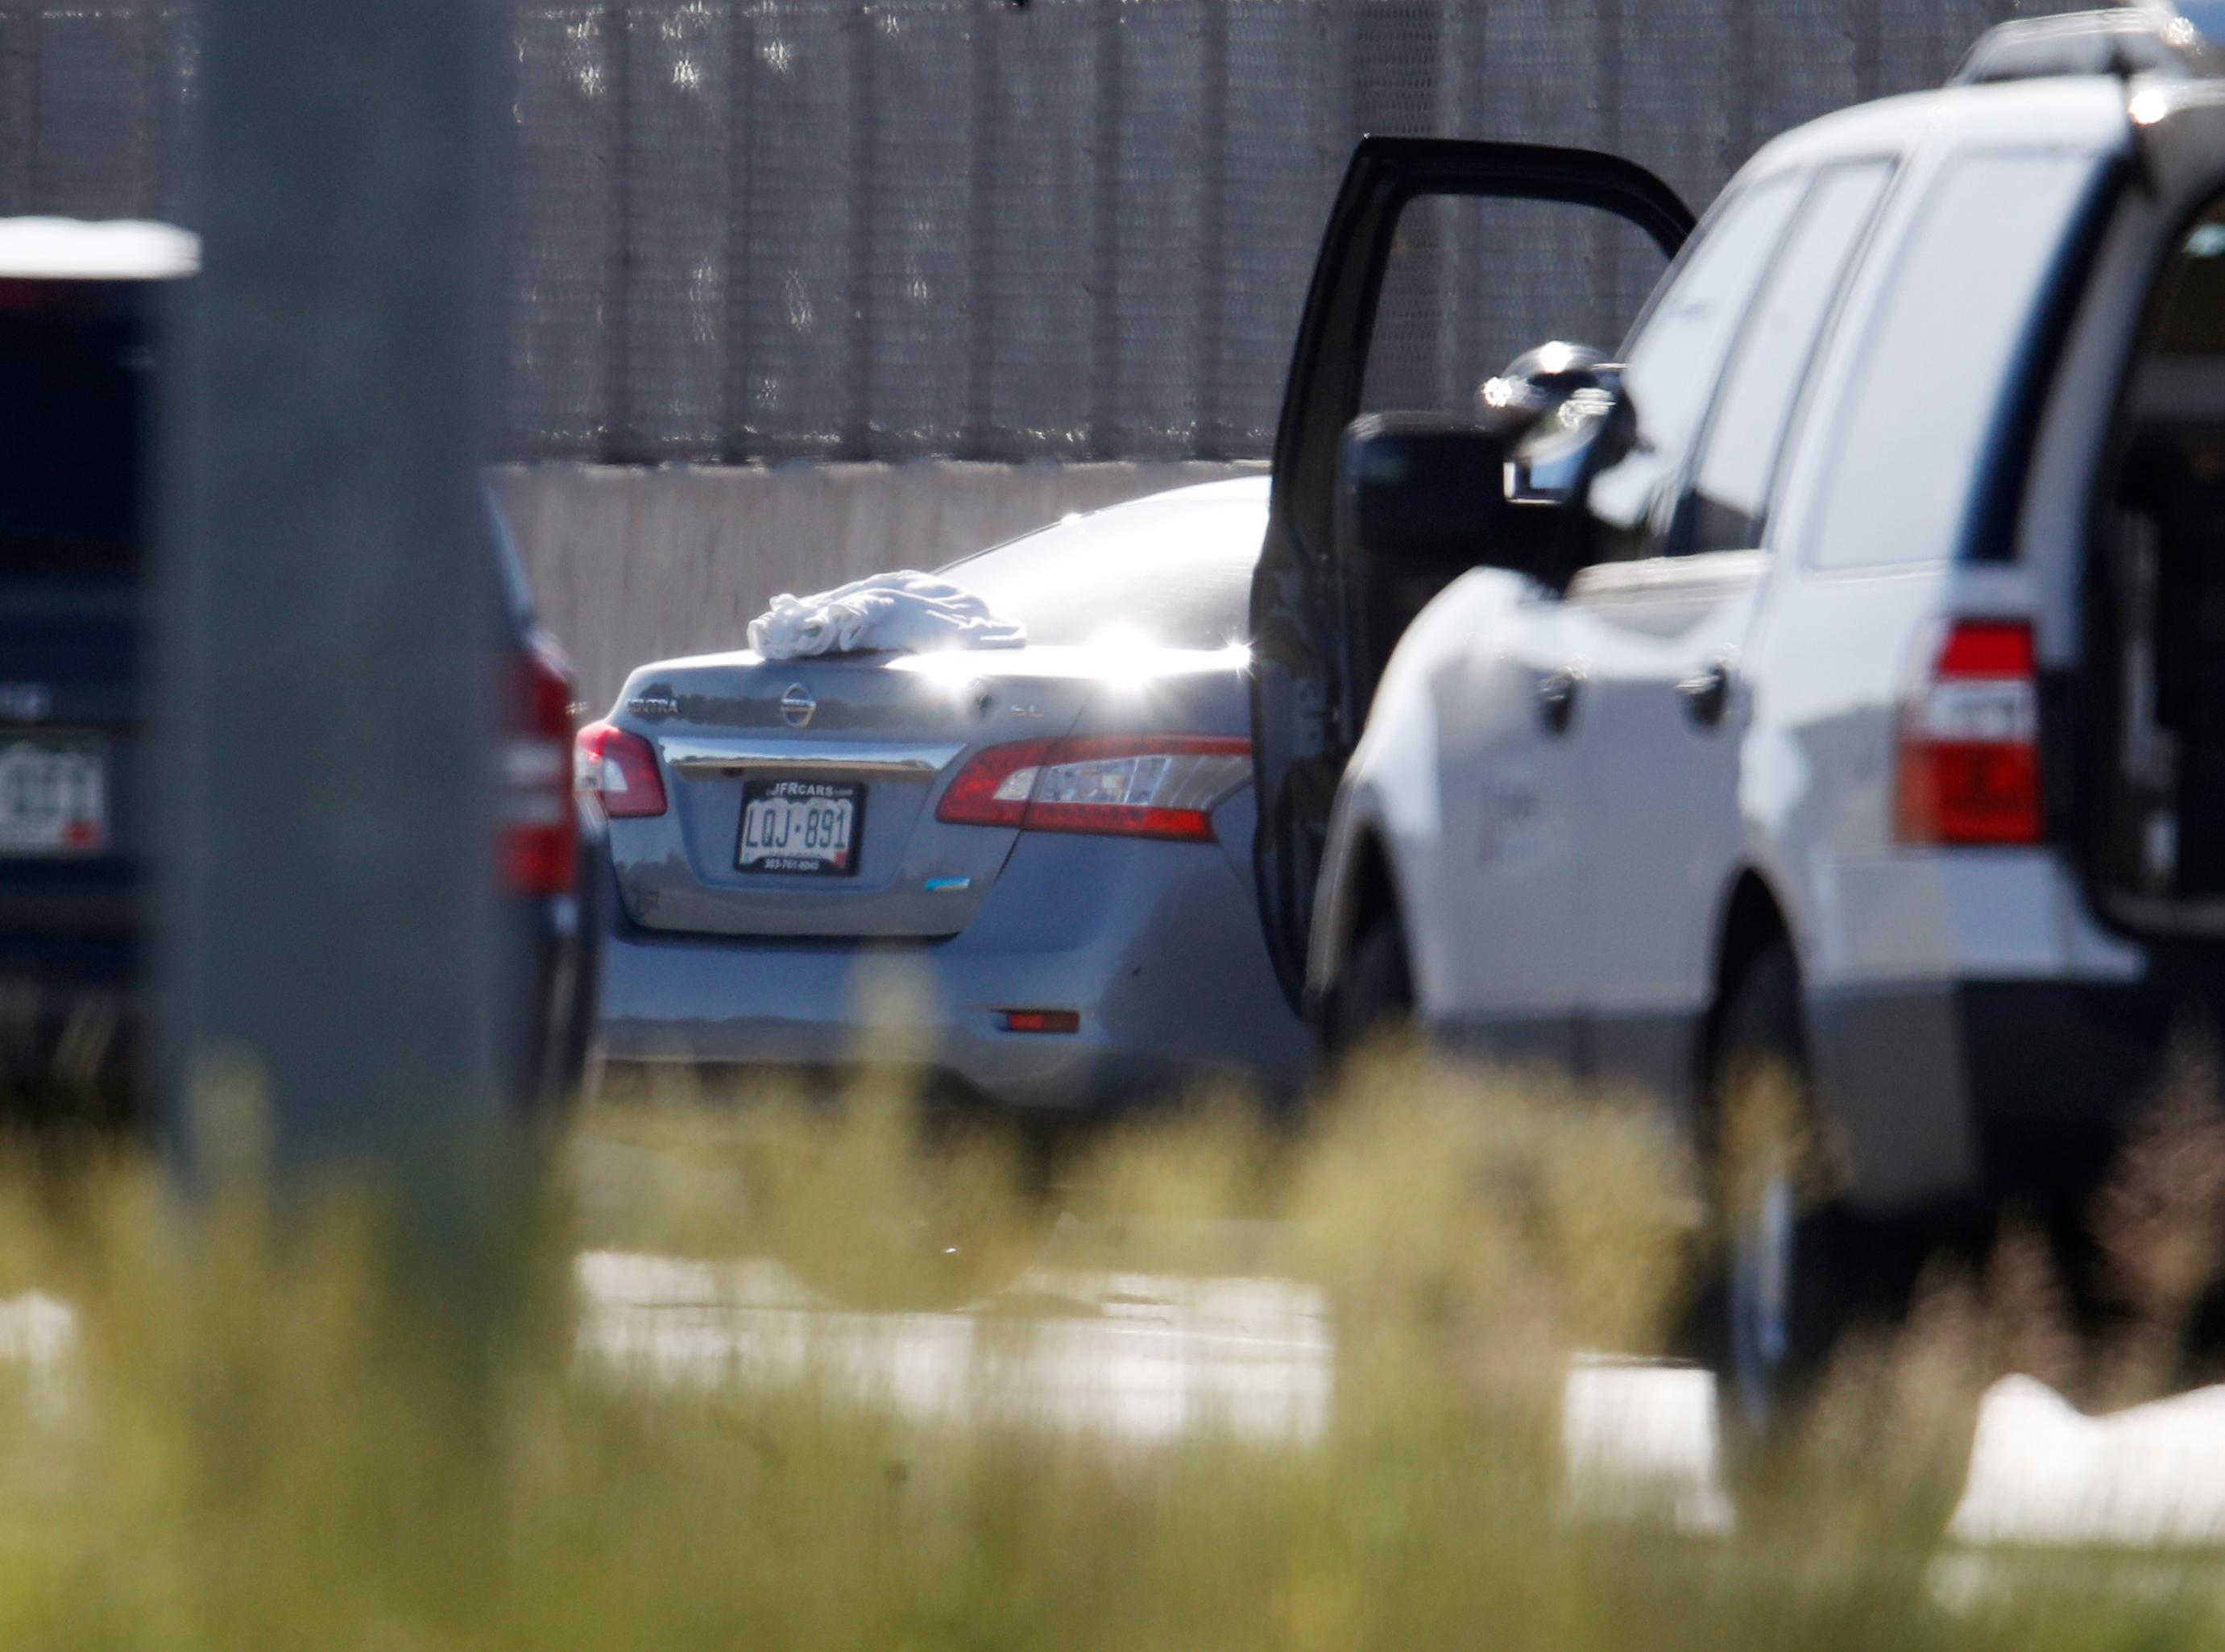 A blanket is shown on the deck of a Nissan sedan, back center, that was being driven by an Uber driver when the vehicle crashed into a retaining wall along Interstate 25 south of downtown Denver early Friday, June 1, 2018. (AP Photo/David Zalubowski)